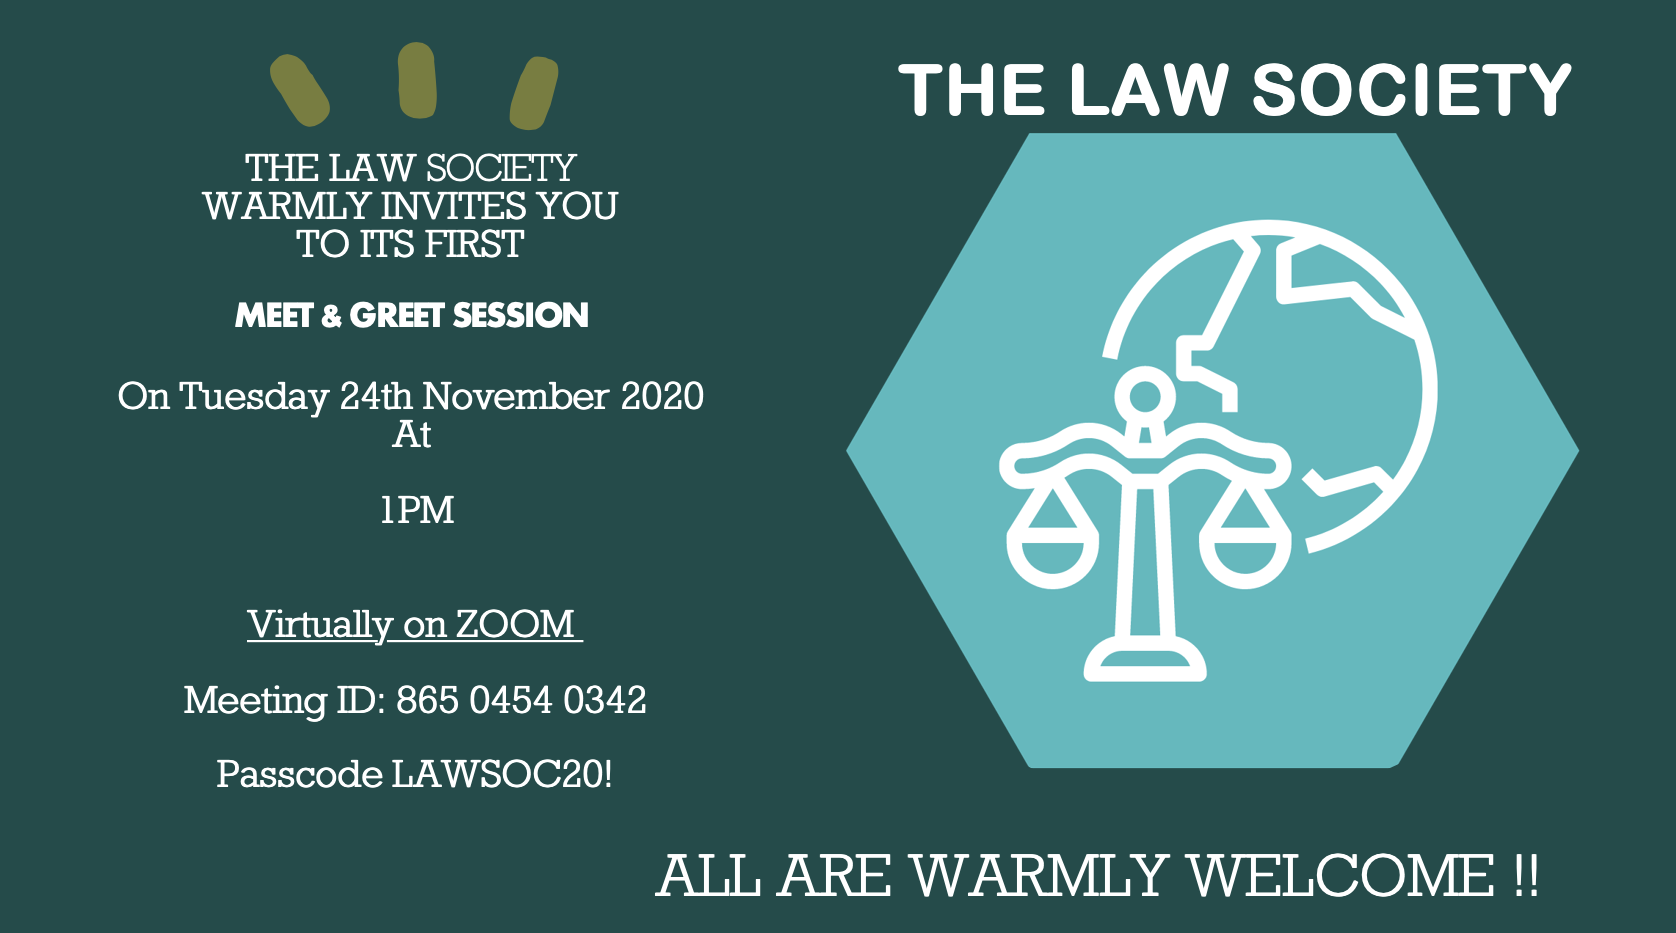 Law Society Meet and Greet